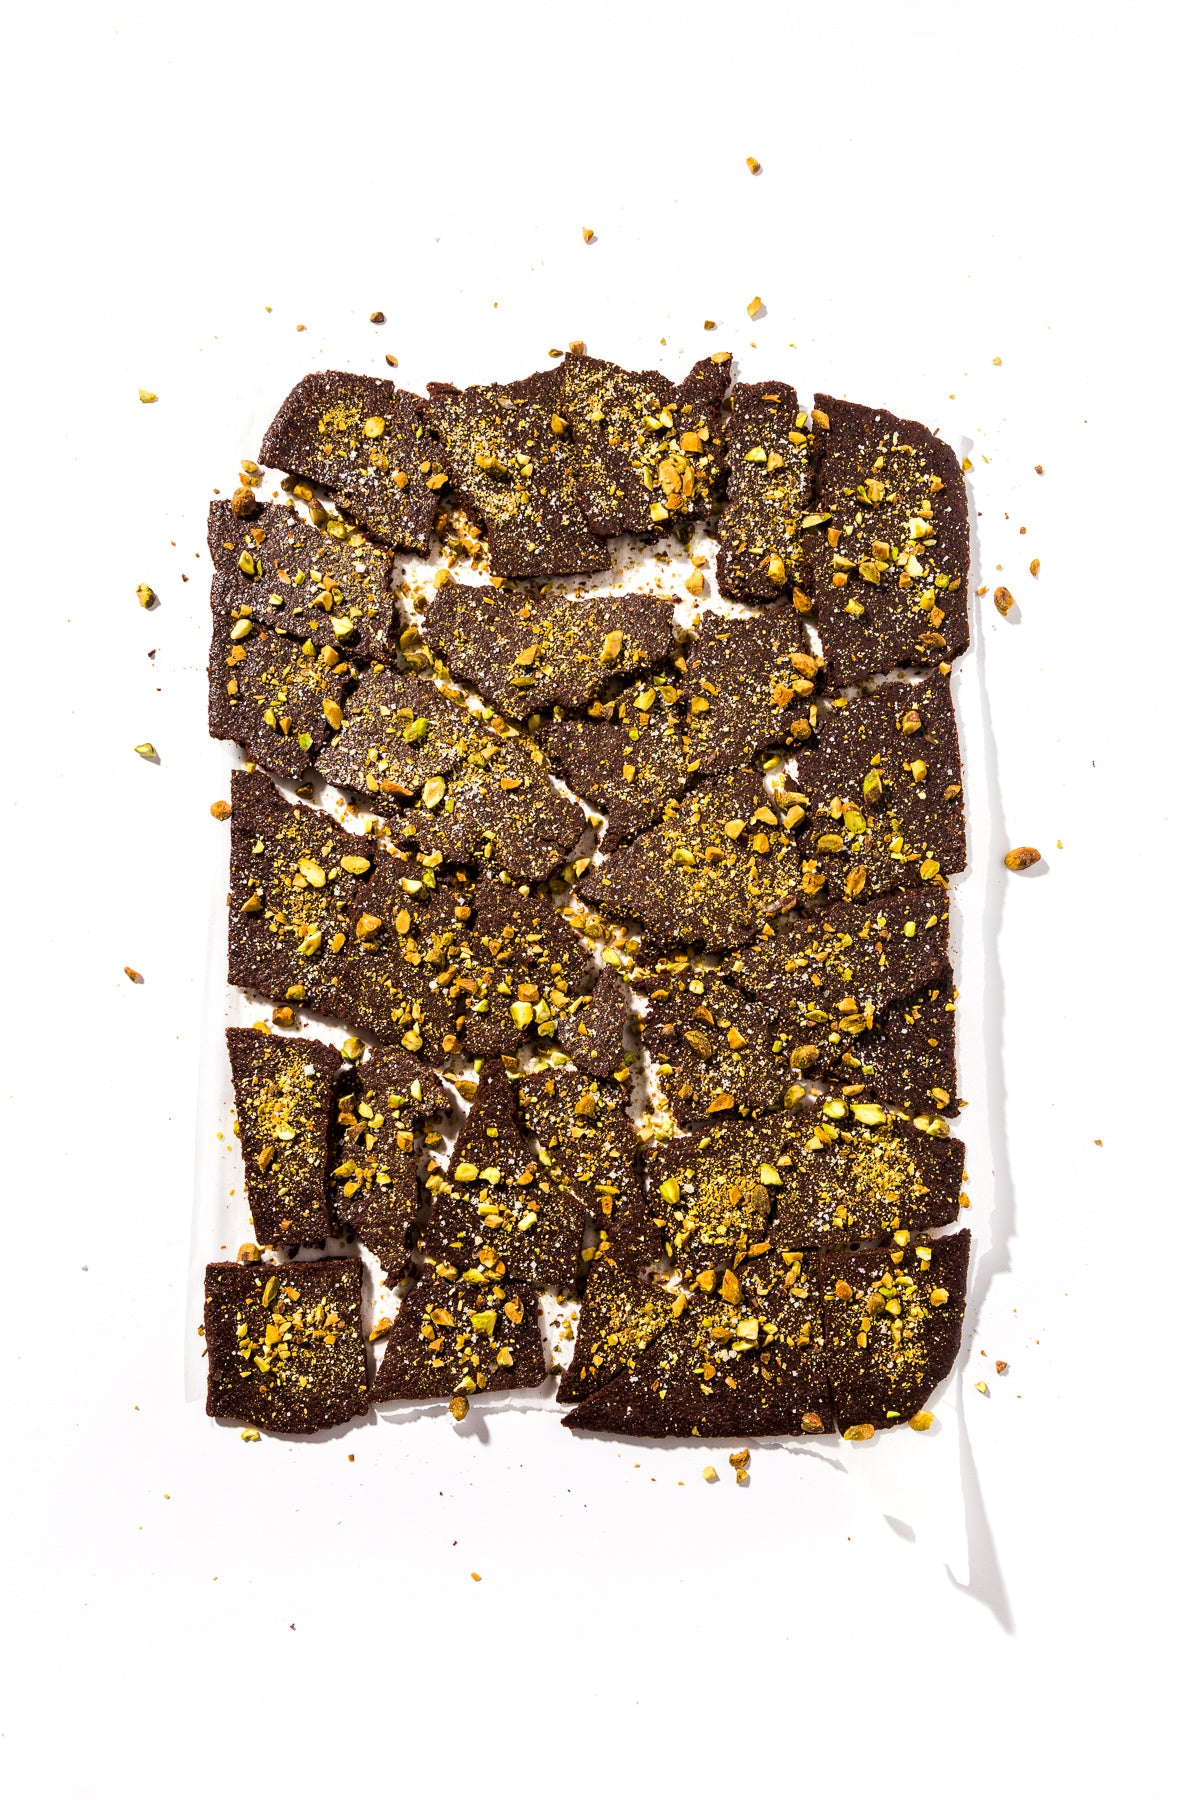 Image of full sheet of Miss Jones Baking Co Brownie Batter Bark cracked into pieces